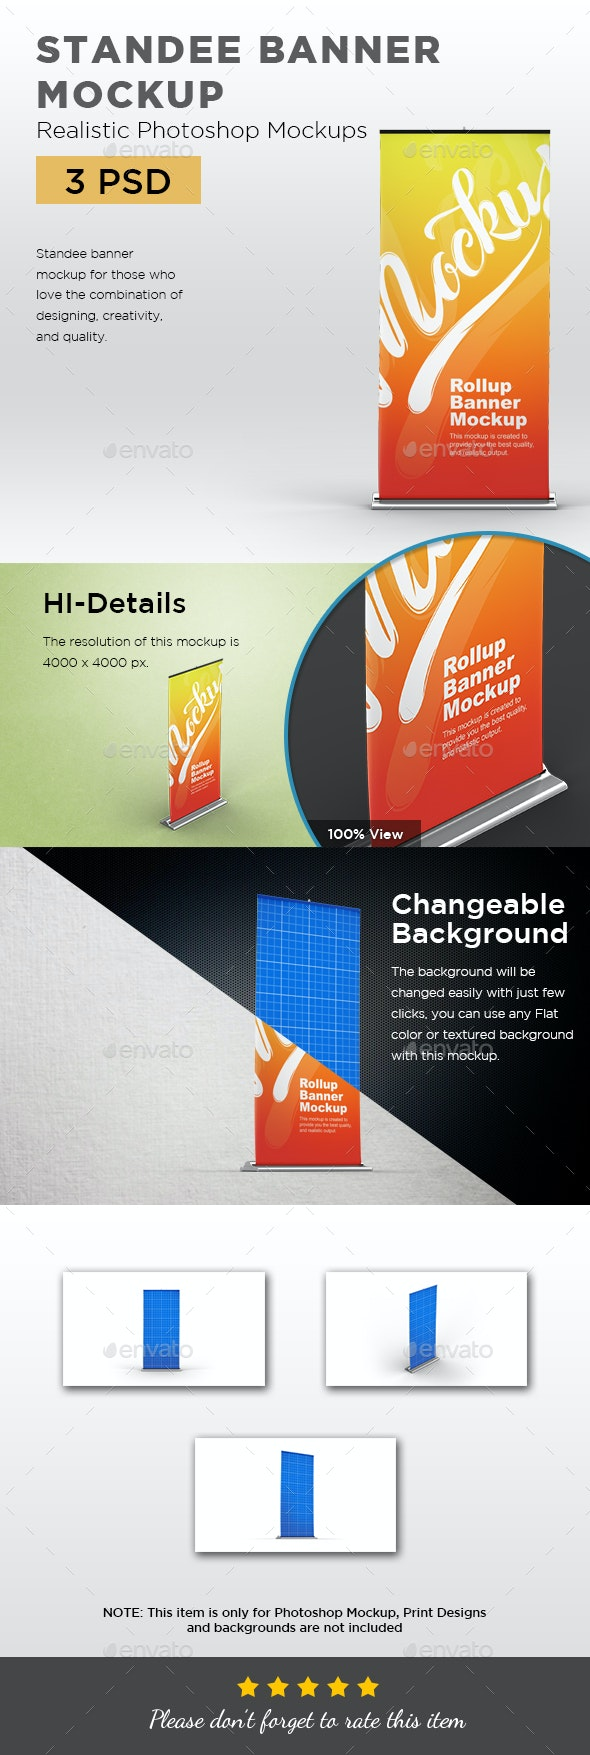 Standee Rollup Banner Mockup - Print Product Mock-Ups